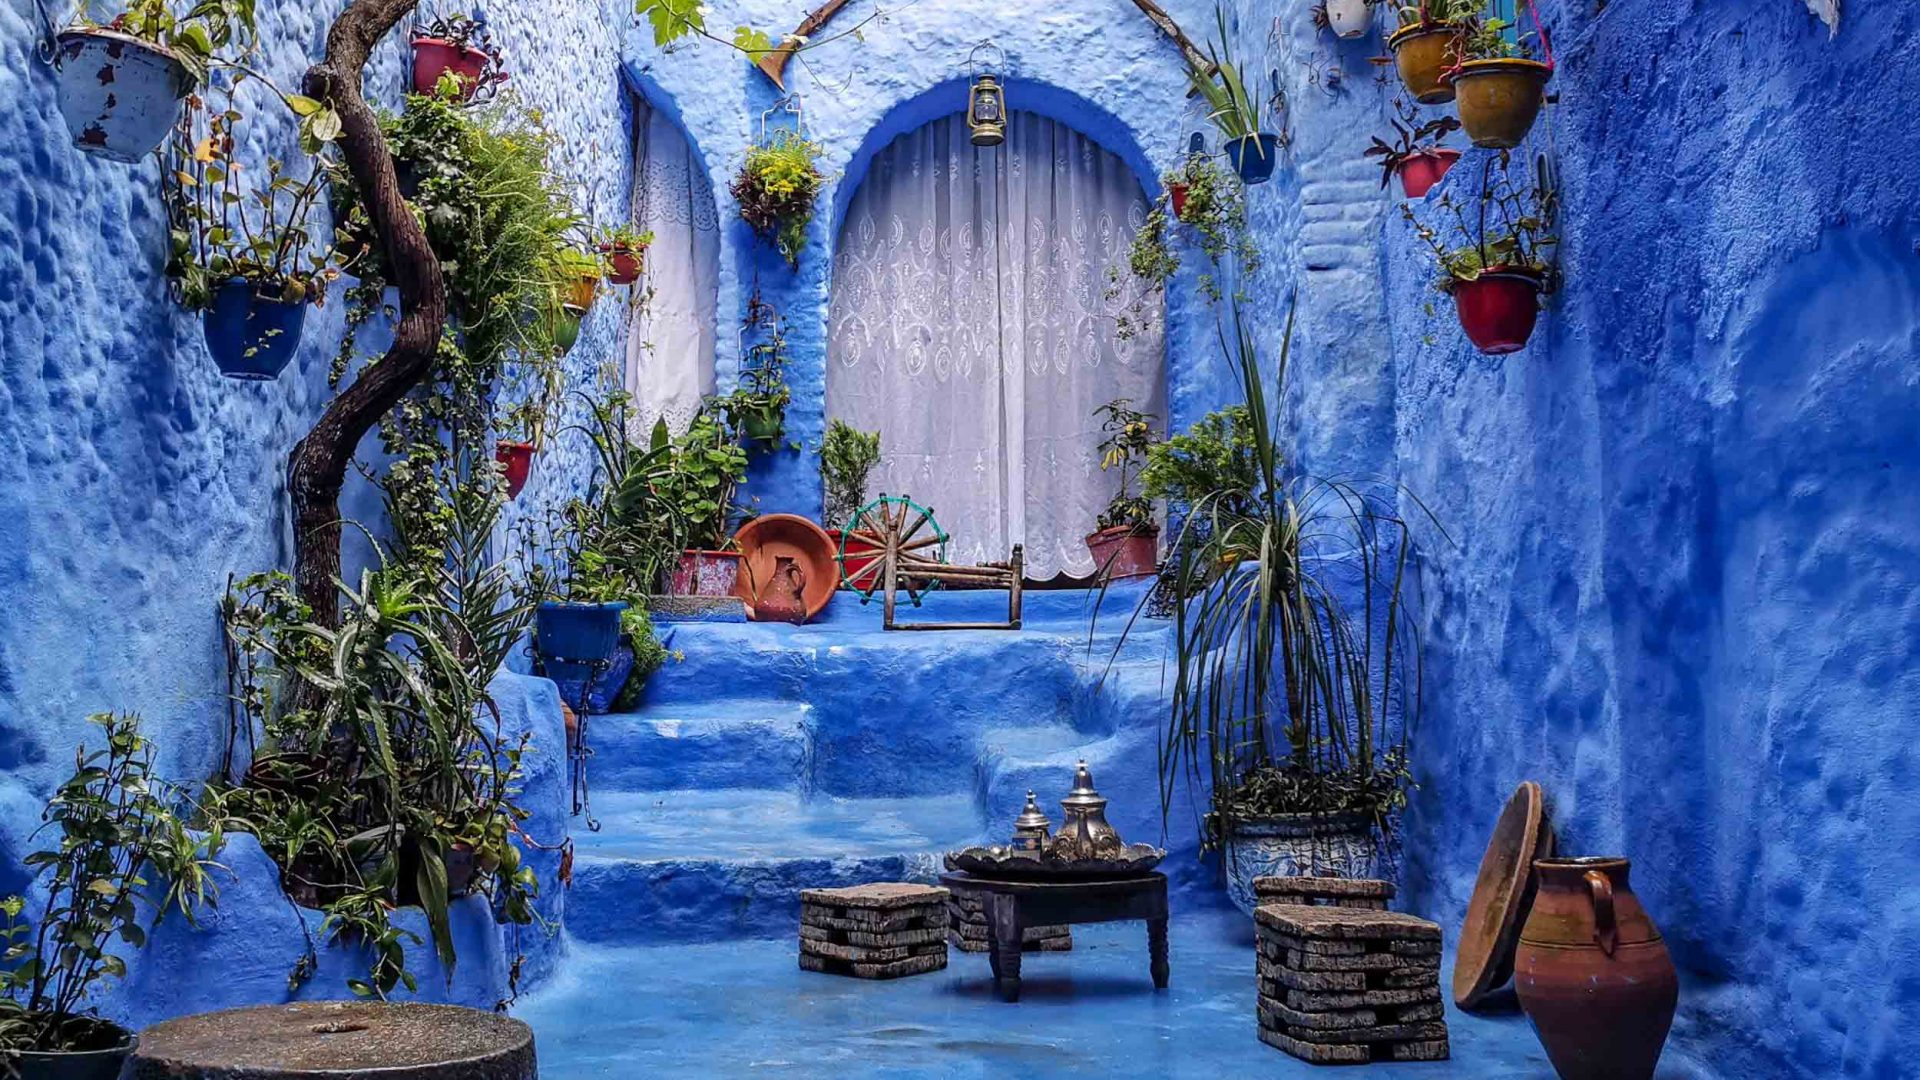 The entry to a blue home in Chefchaouen, Morocco